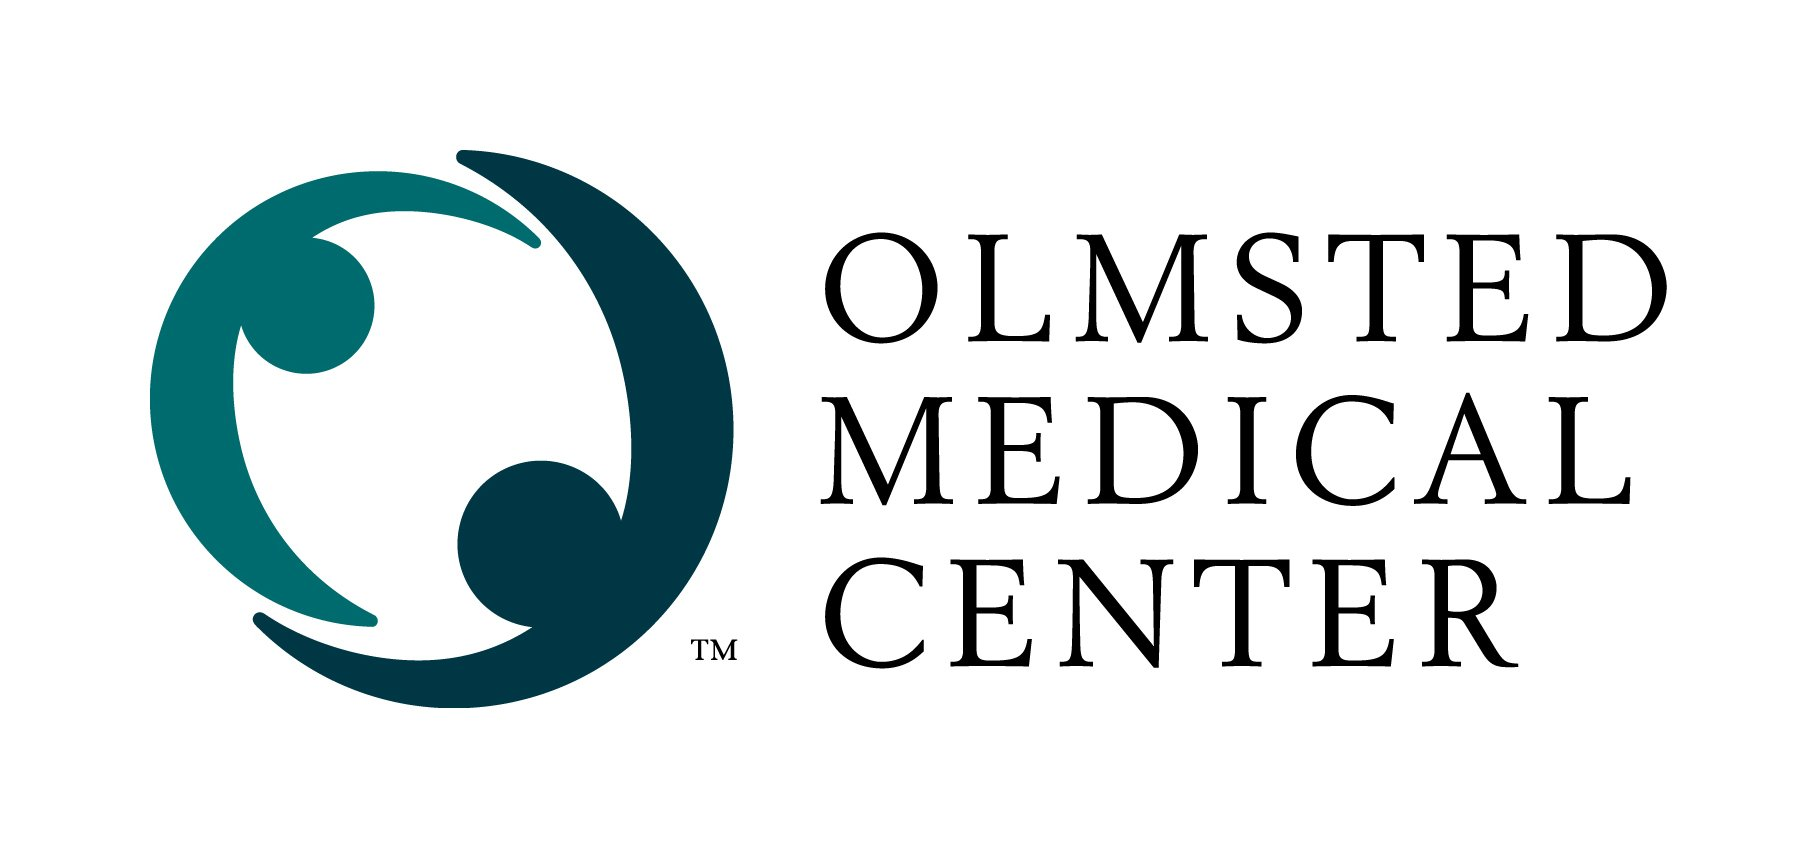 Olmsted Medical Center logo